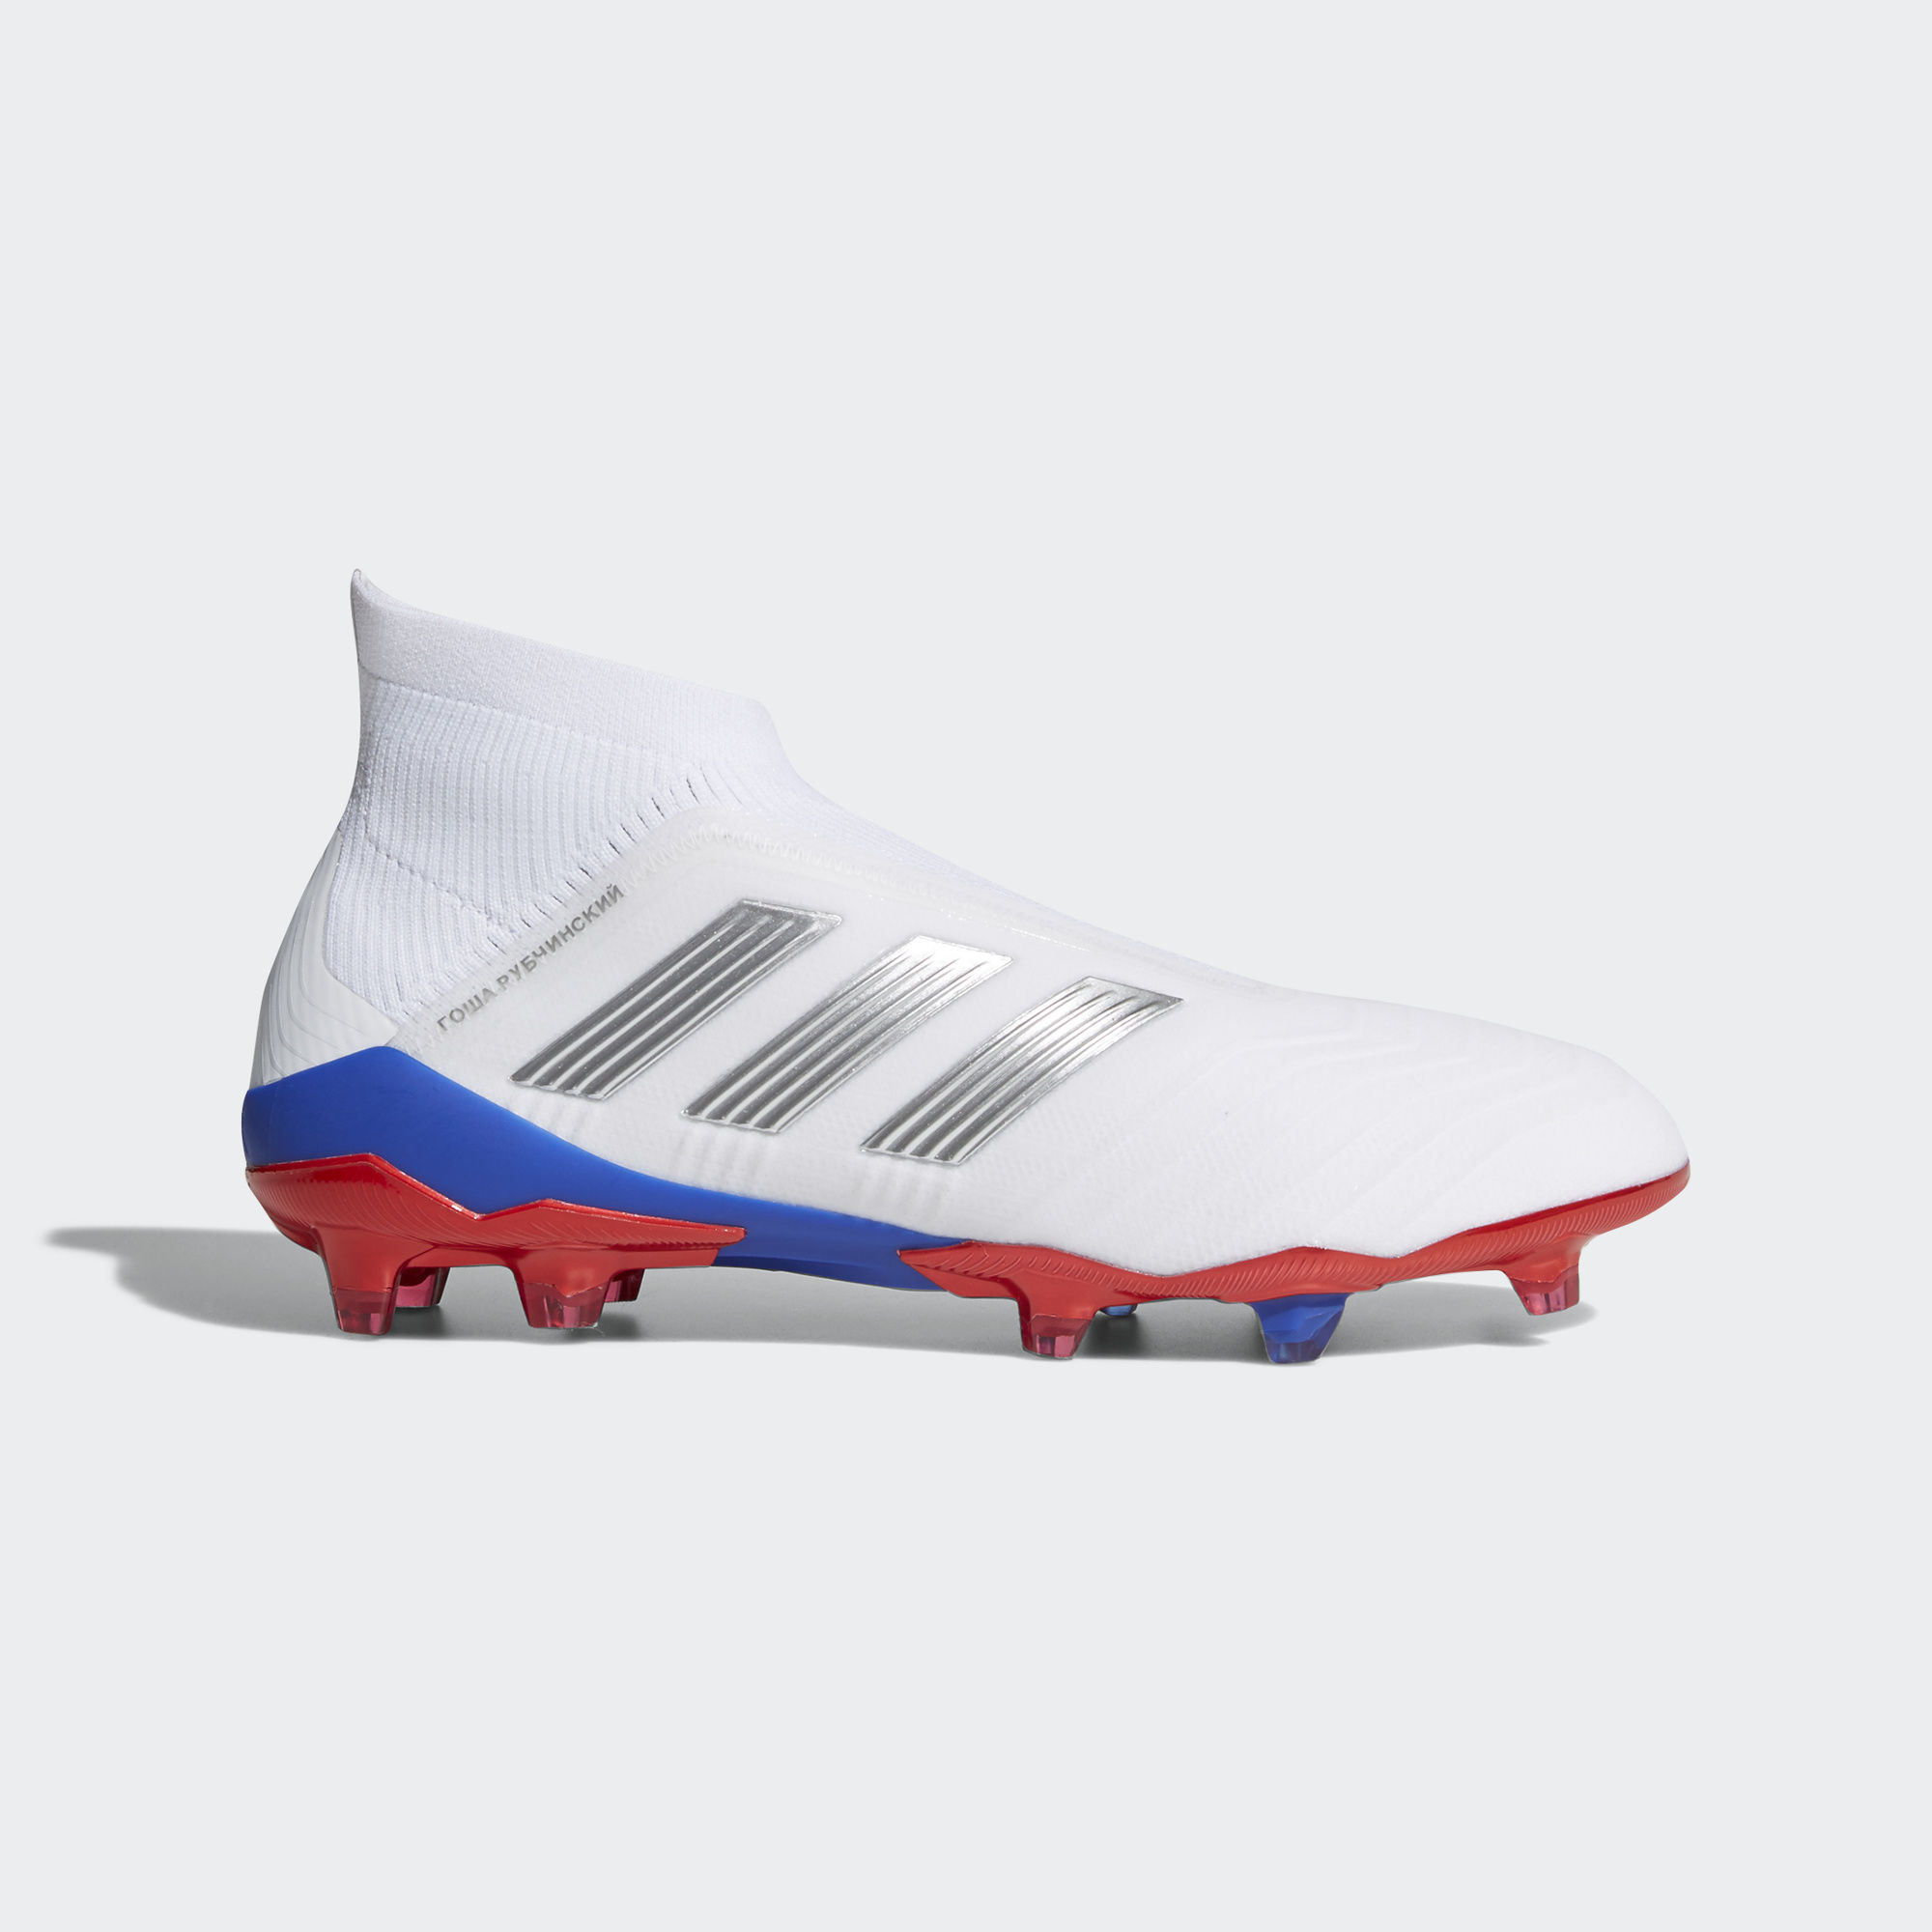 low priced 51f96 35230 Adidas Gosha Rubchinskiy Predator 18+ Firm Ground Boots - Ftwr White   Silver Met  Bold Red